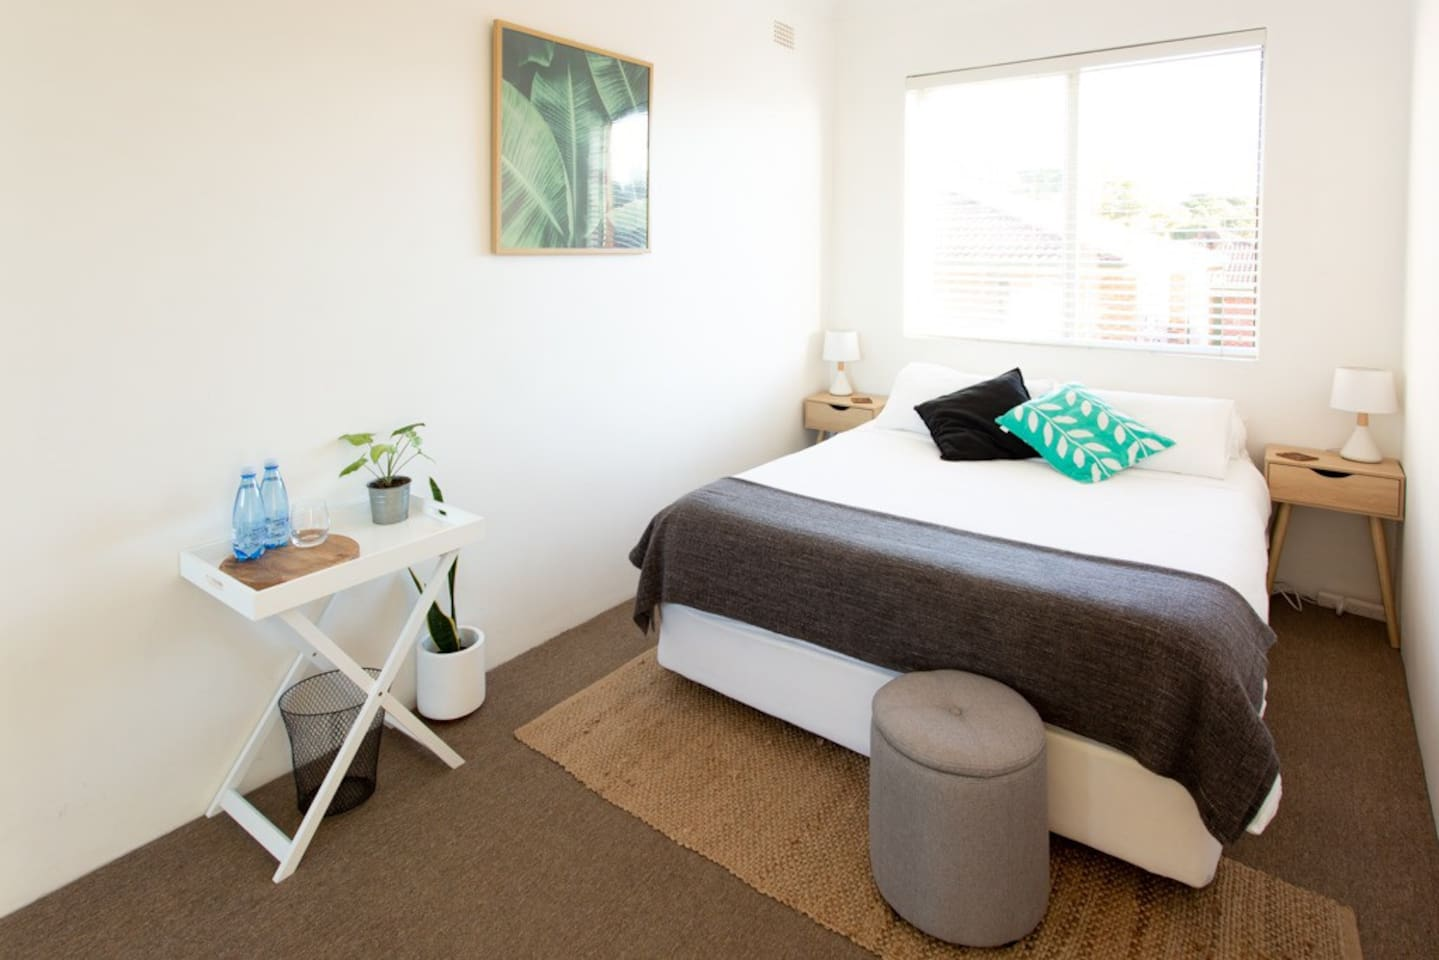 The bedroom with a comfy queen size memory foam mattress.